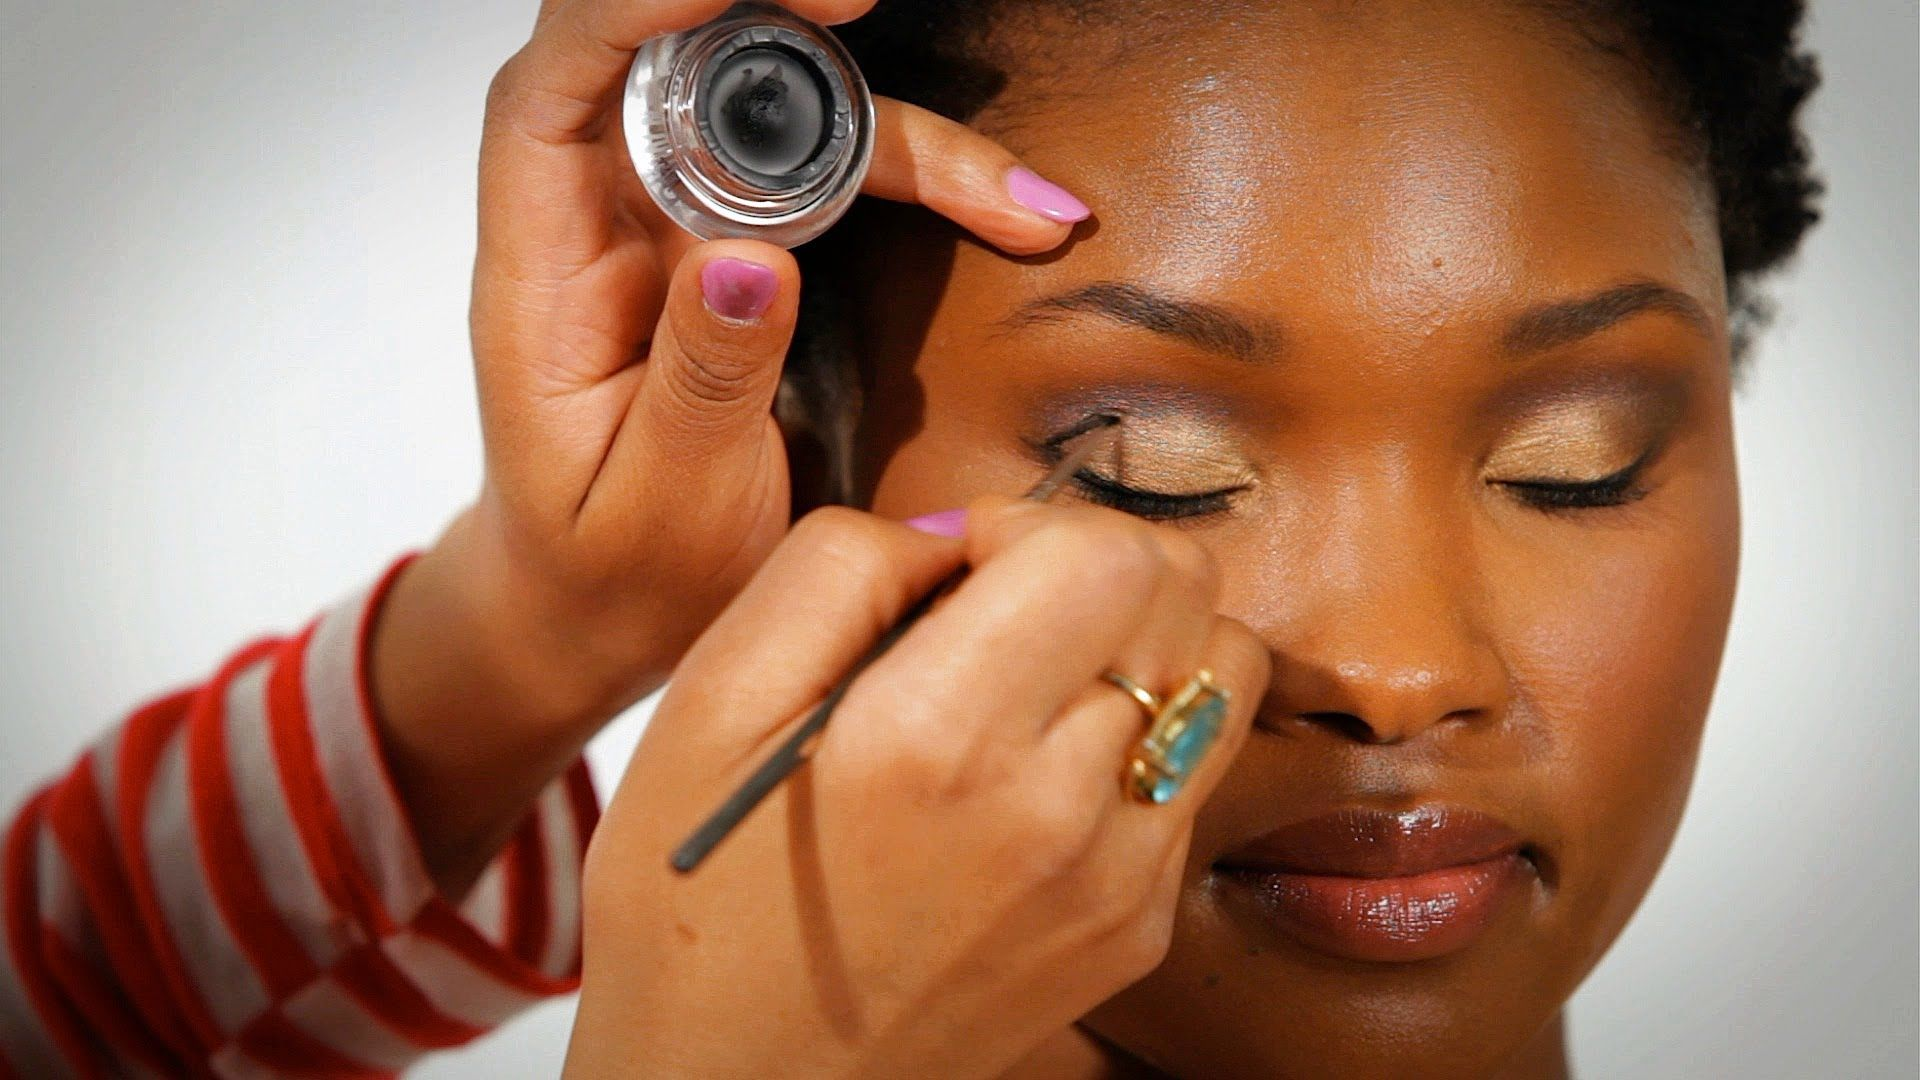 What are some makeup tips for African-American women?